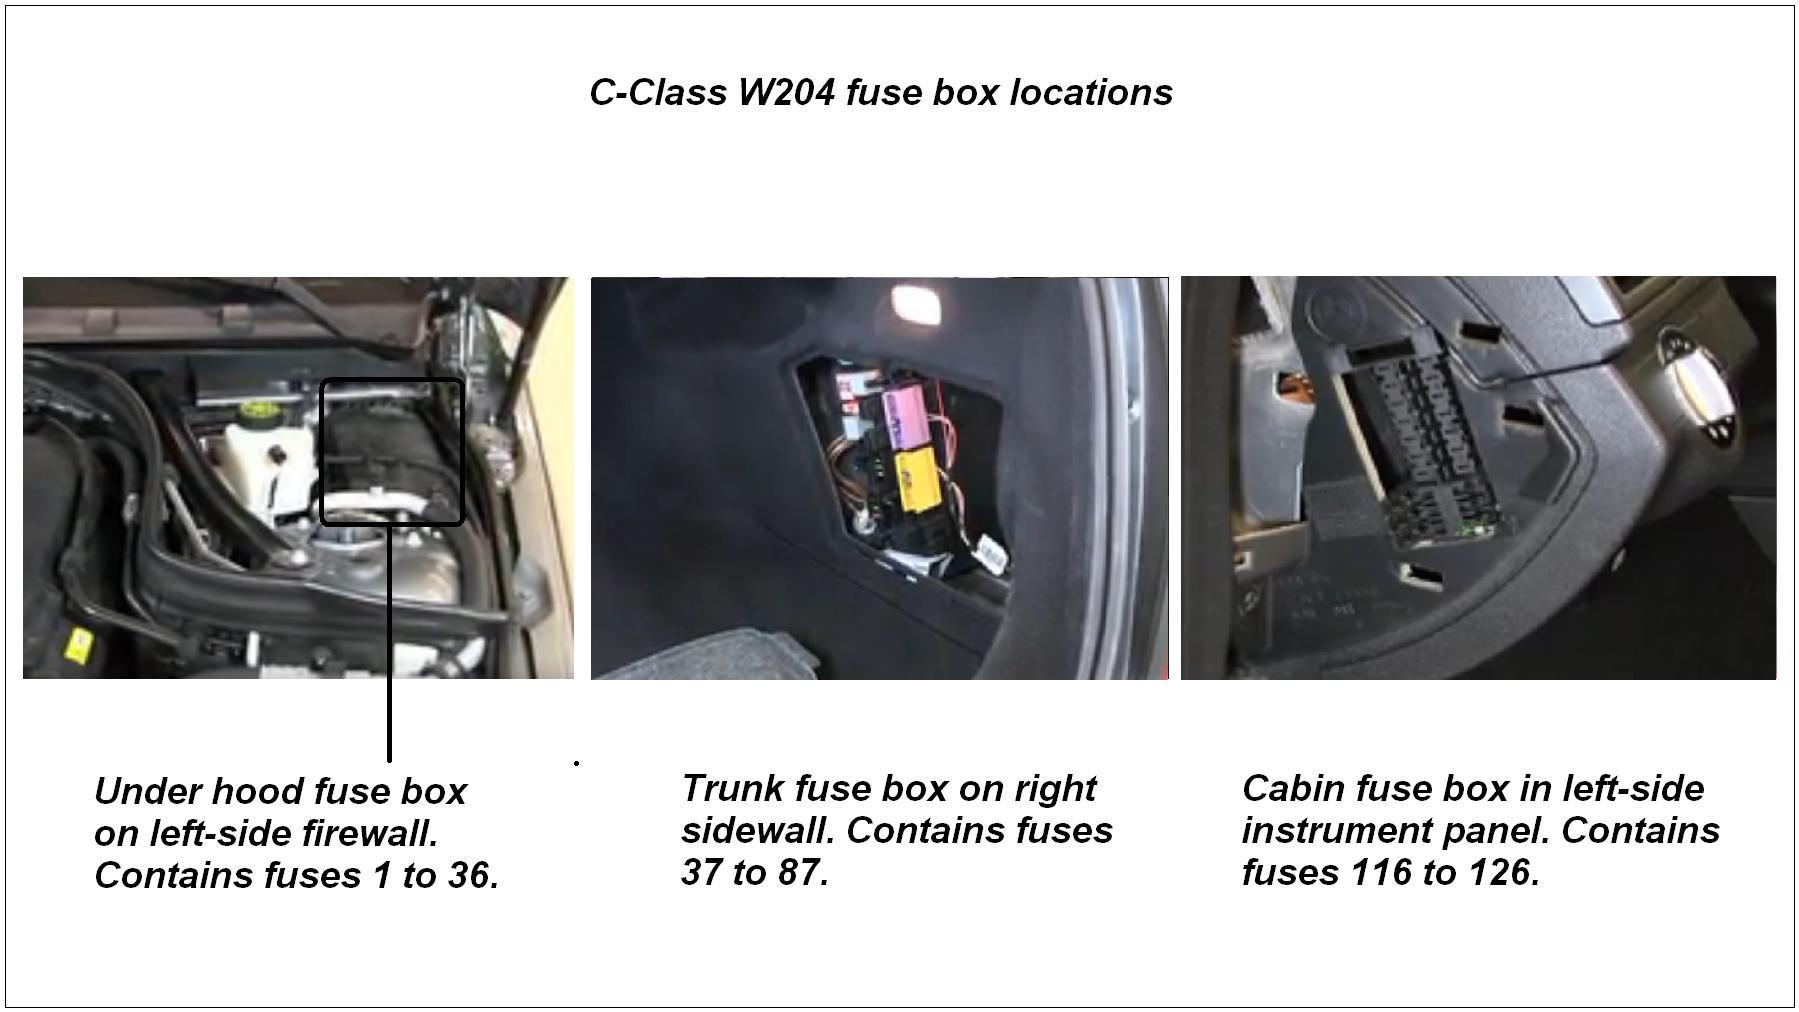 W204fuseboxlocations1799x1012 65419 mercedes benz c class w204 fuse diagrams and commonly blown fuses Mercedes C-Class Fuse Box Diagram at bakdesigns.co